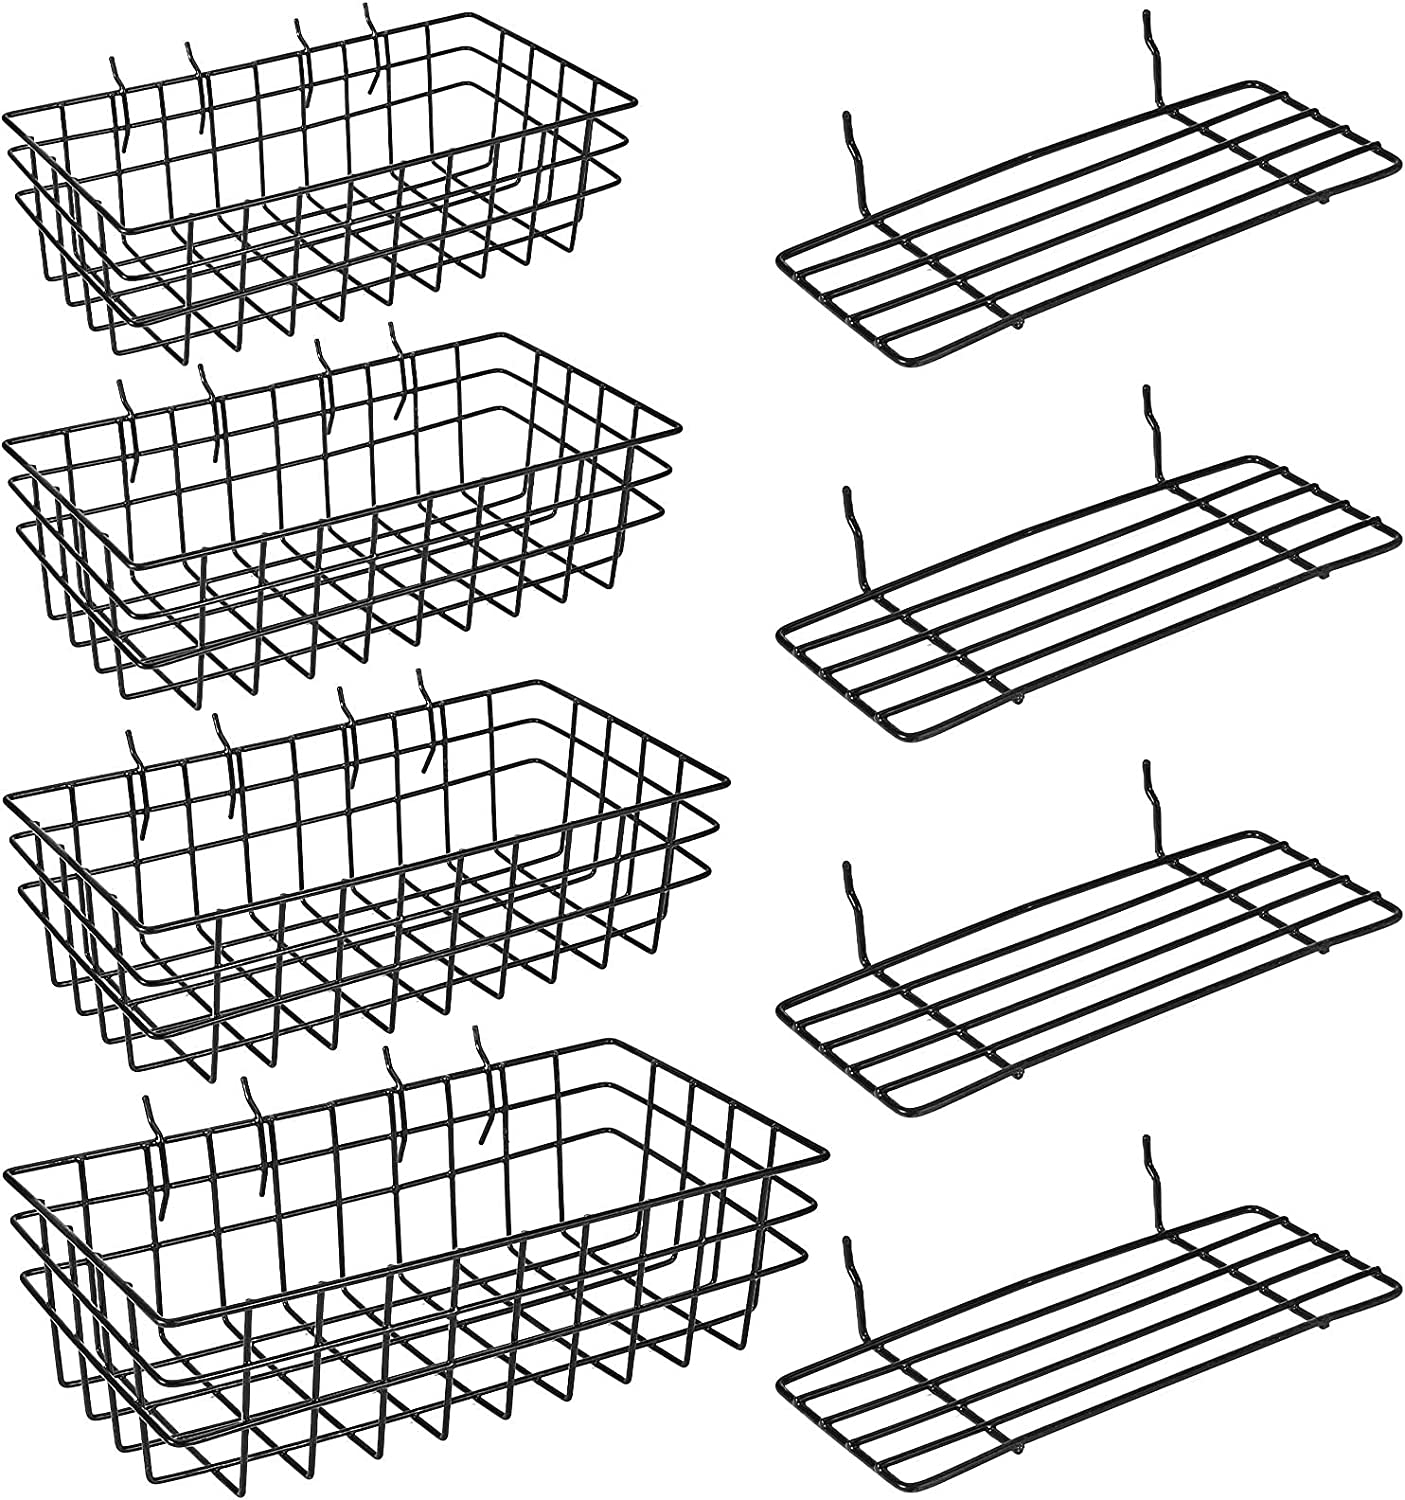 8 Pieces Pegboard Baskets Peg Board Racks Square Style Wire Shel